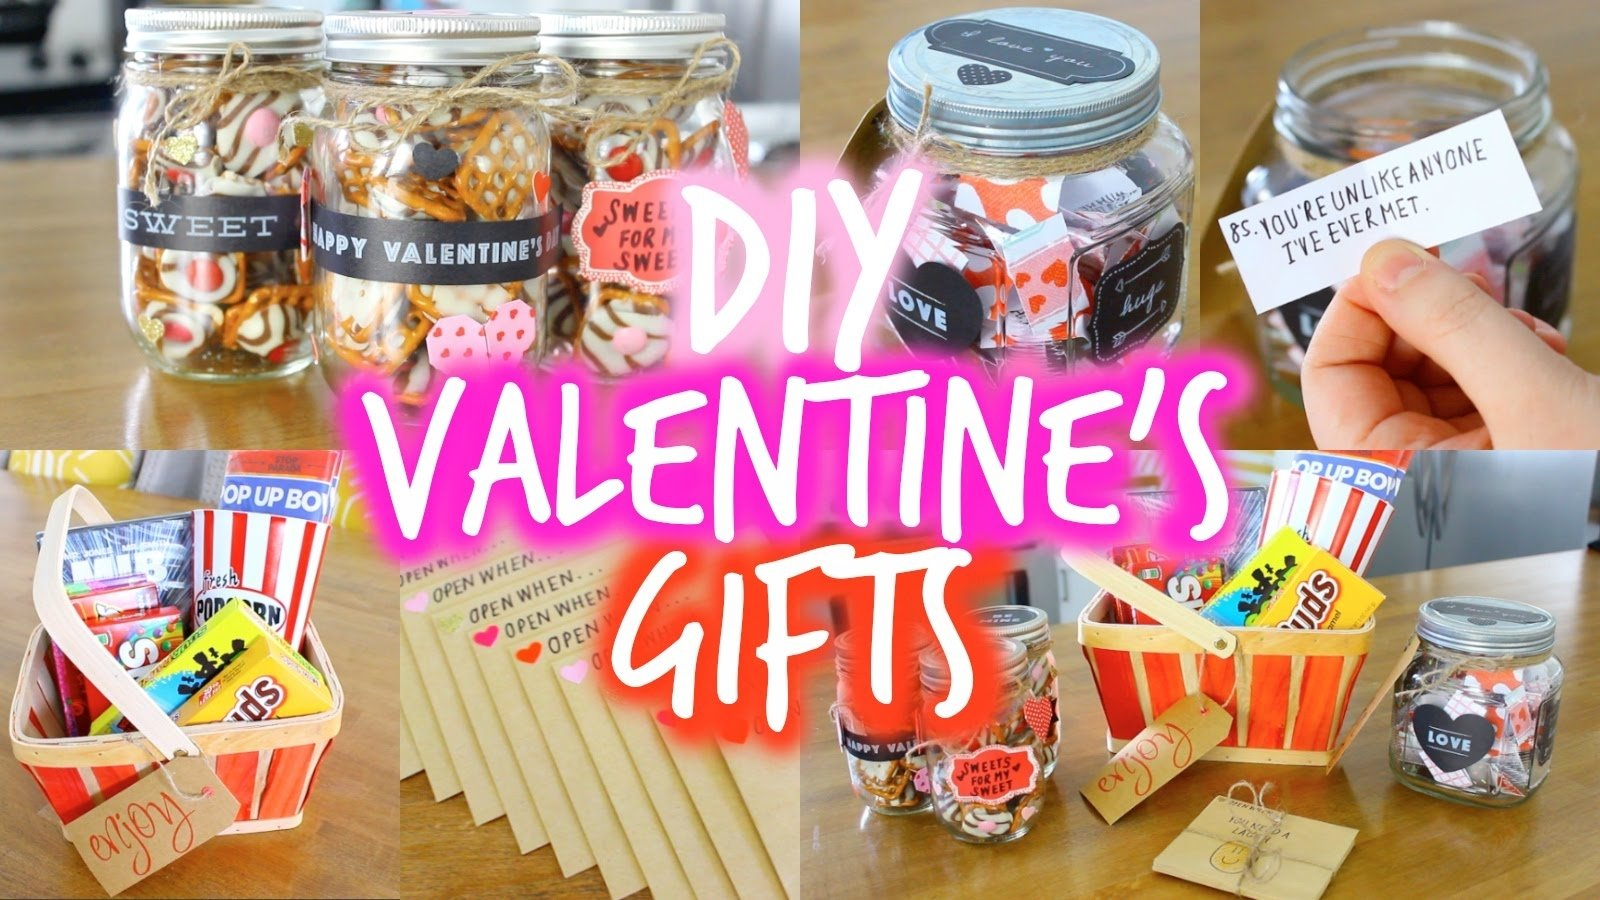 10 Lovable Good Valentines Day Ideas For Guys easy diy valentines day gift ideas for your boyfriend youtube 6 2020